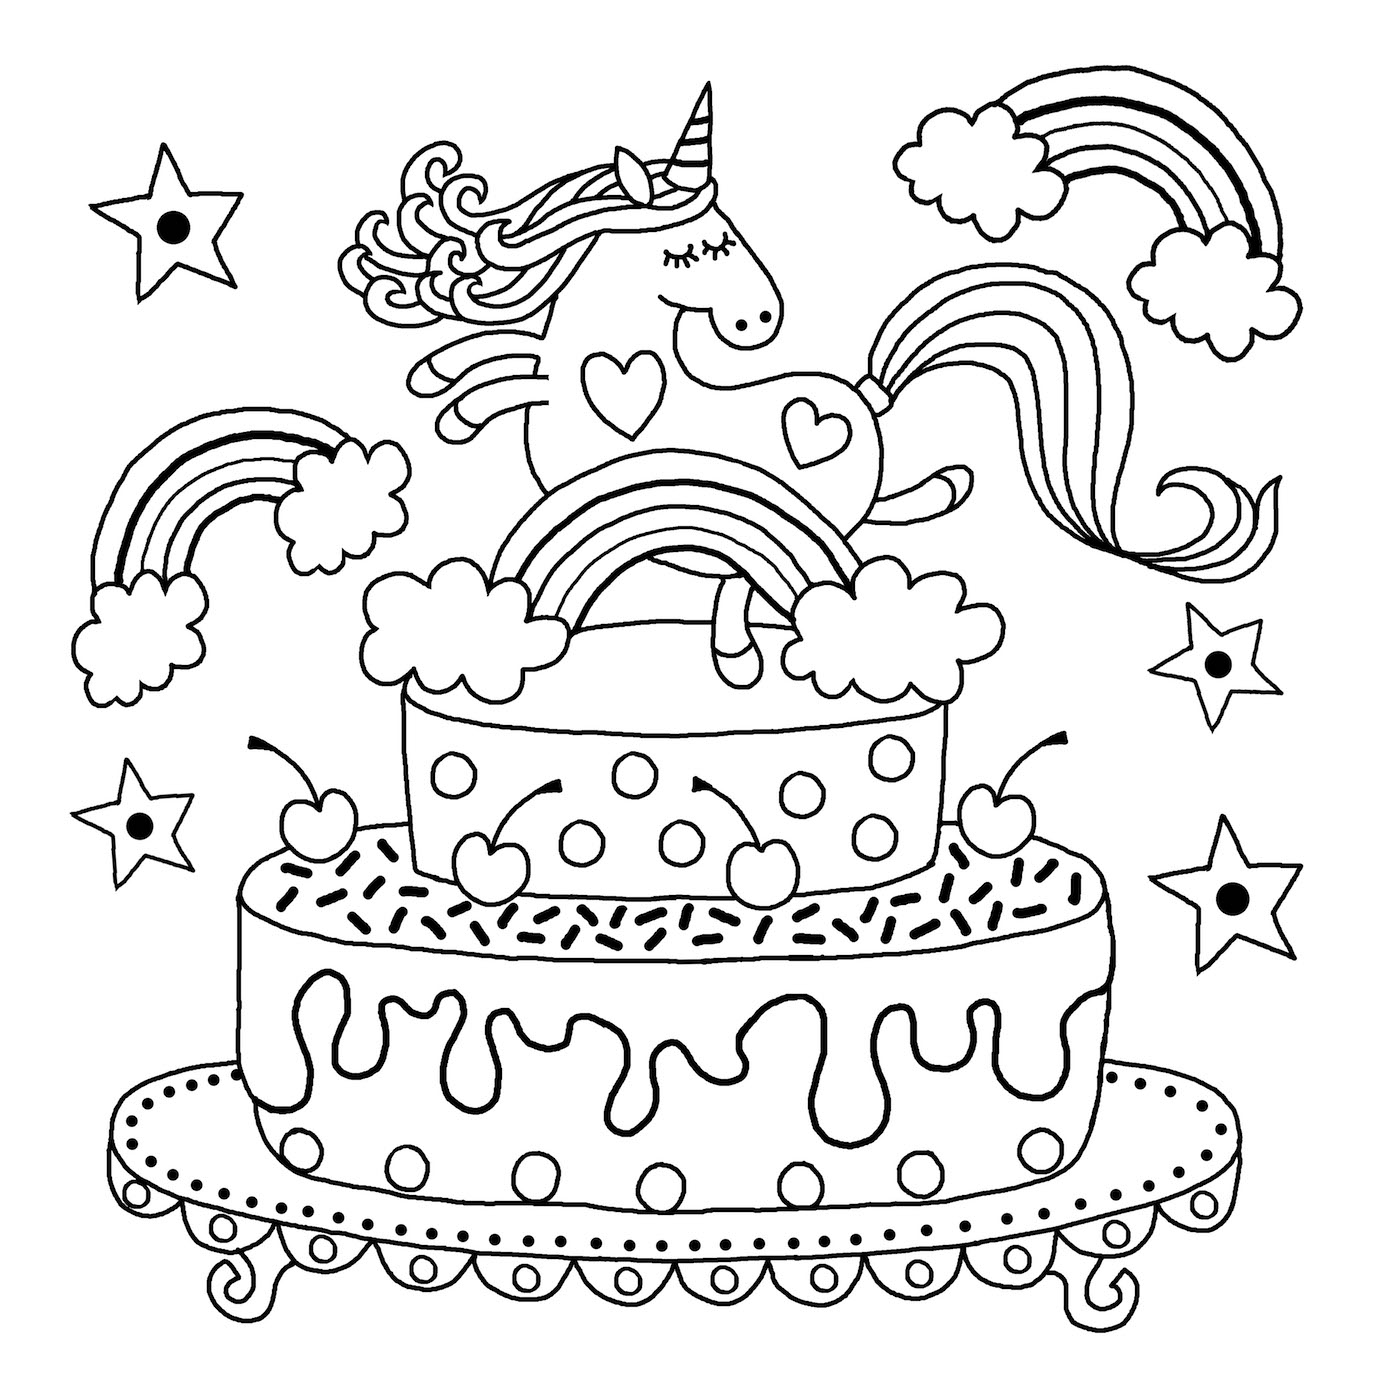 Dynamic image intended for printable unicorn